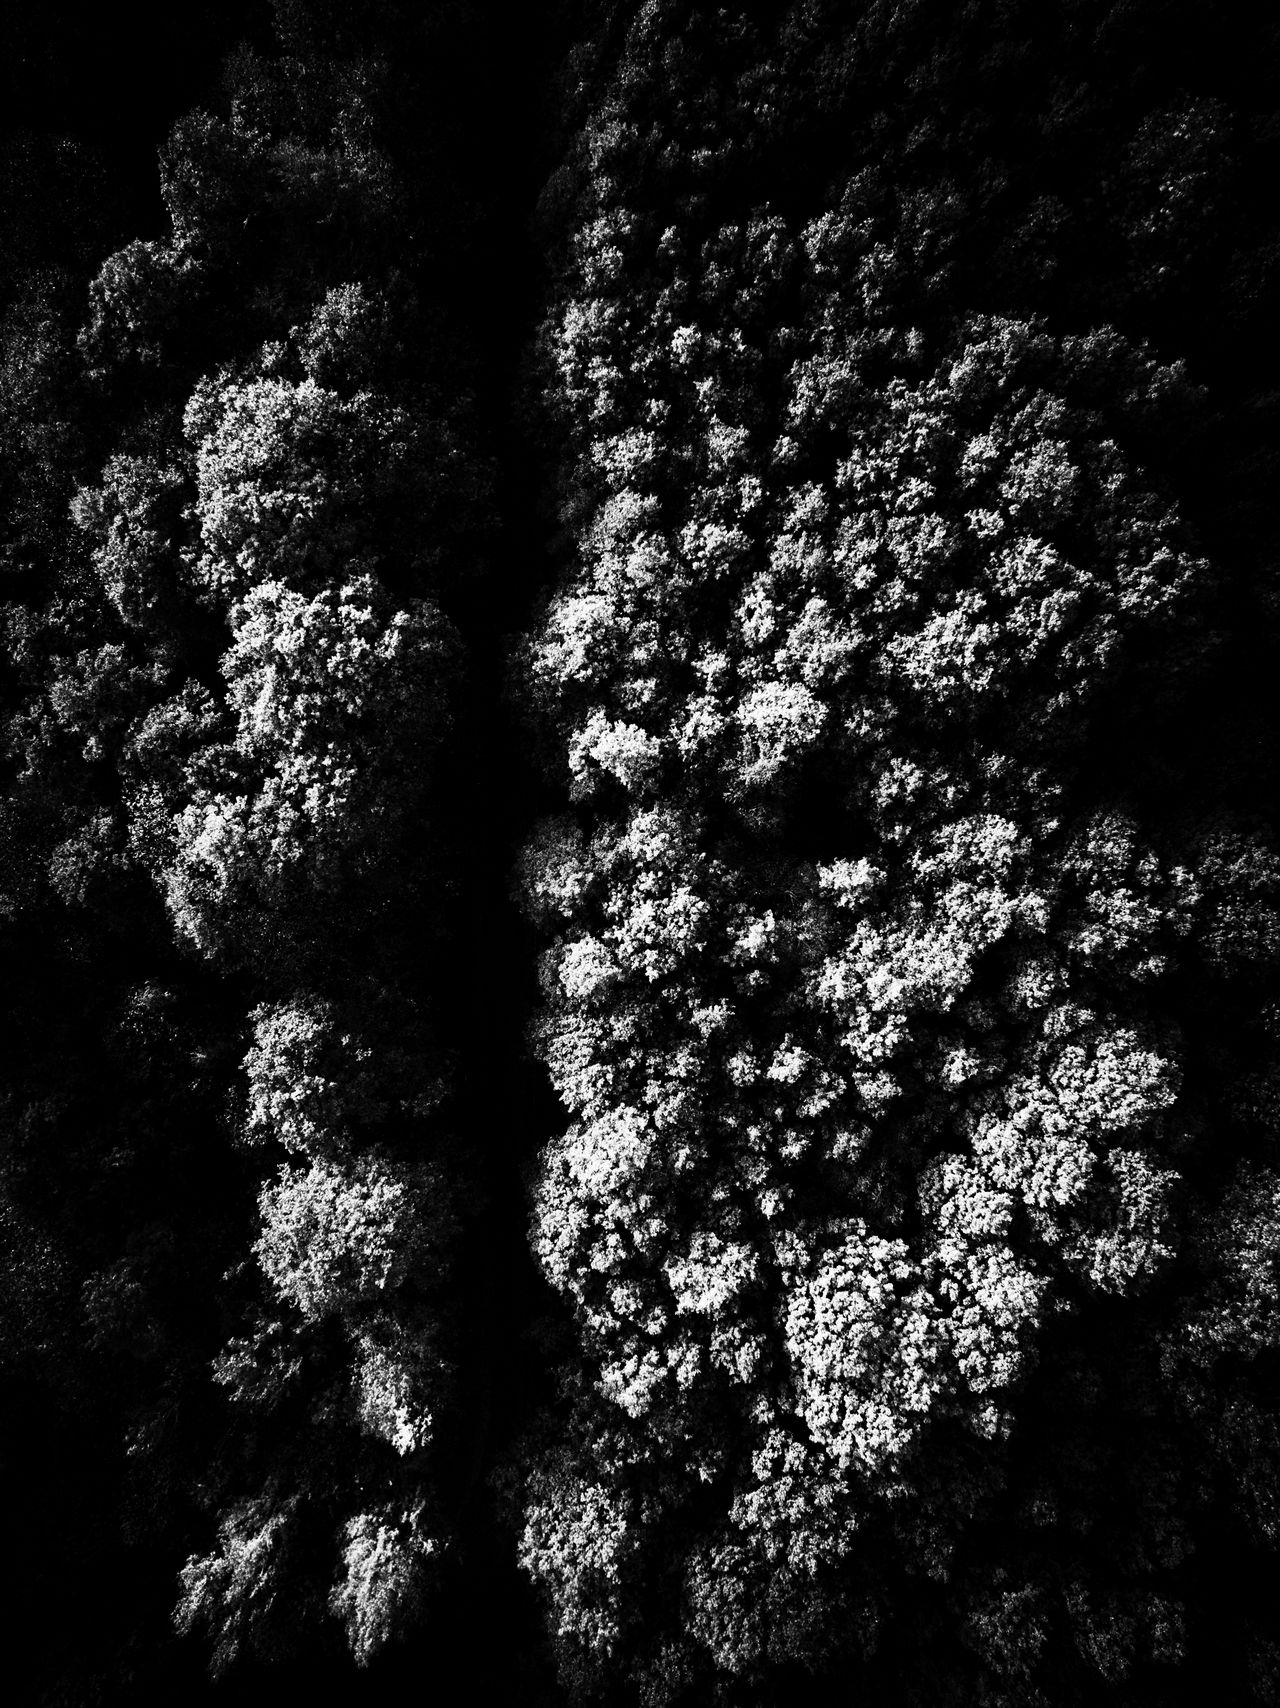 Abstract Abstract Photography Aerial Photography Aerial Shot Aerial View Black And White Blackandwhite Blackandwhite Photography Flying High Forest Forest Photography Minimal Minimalism Minimalobsession View From Above Wood